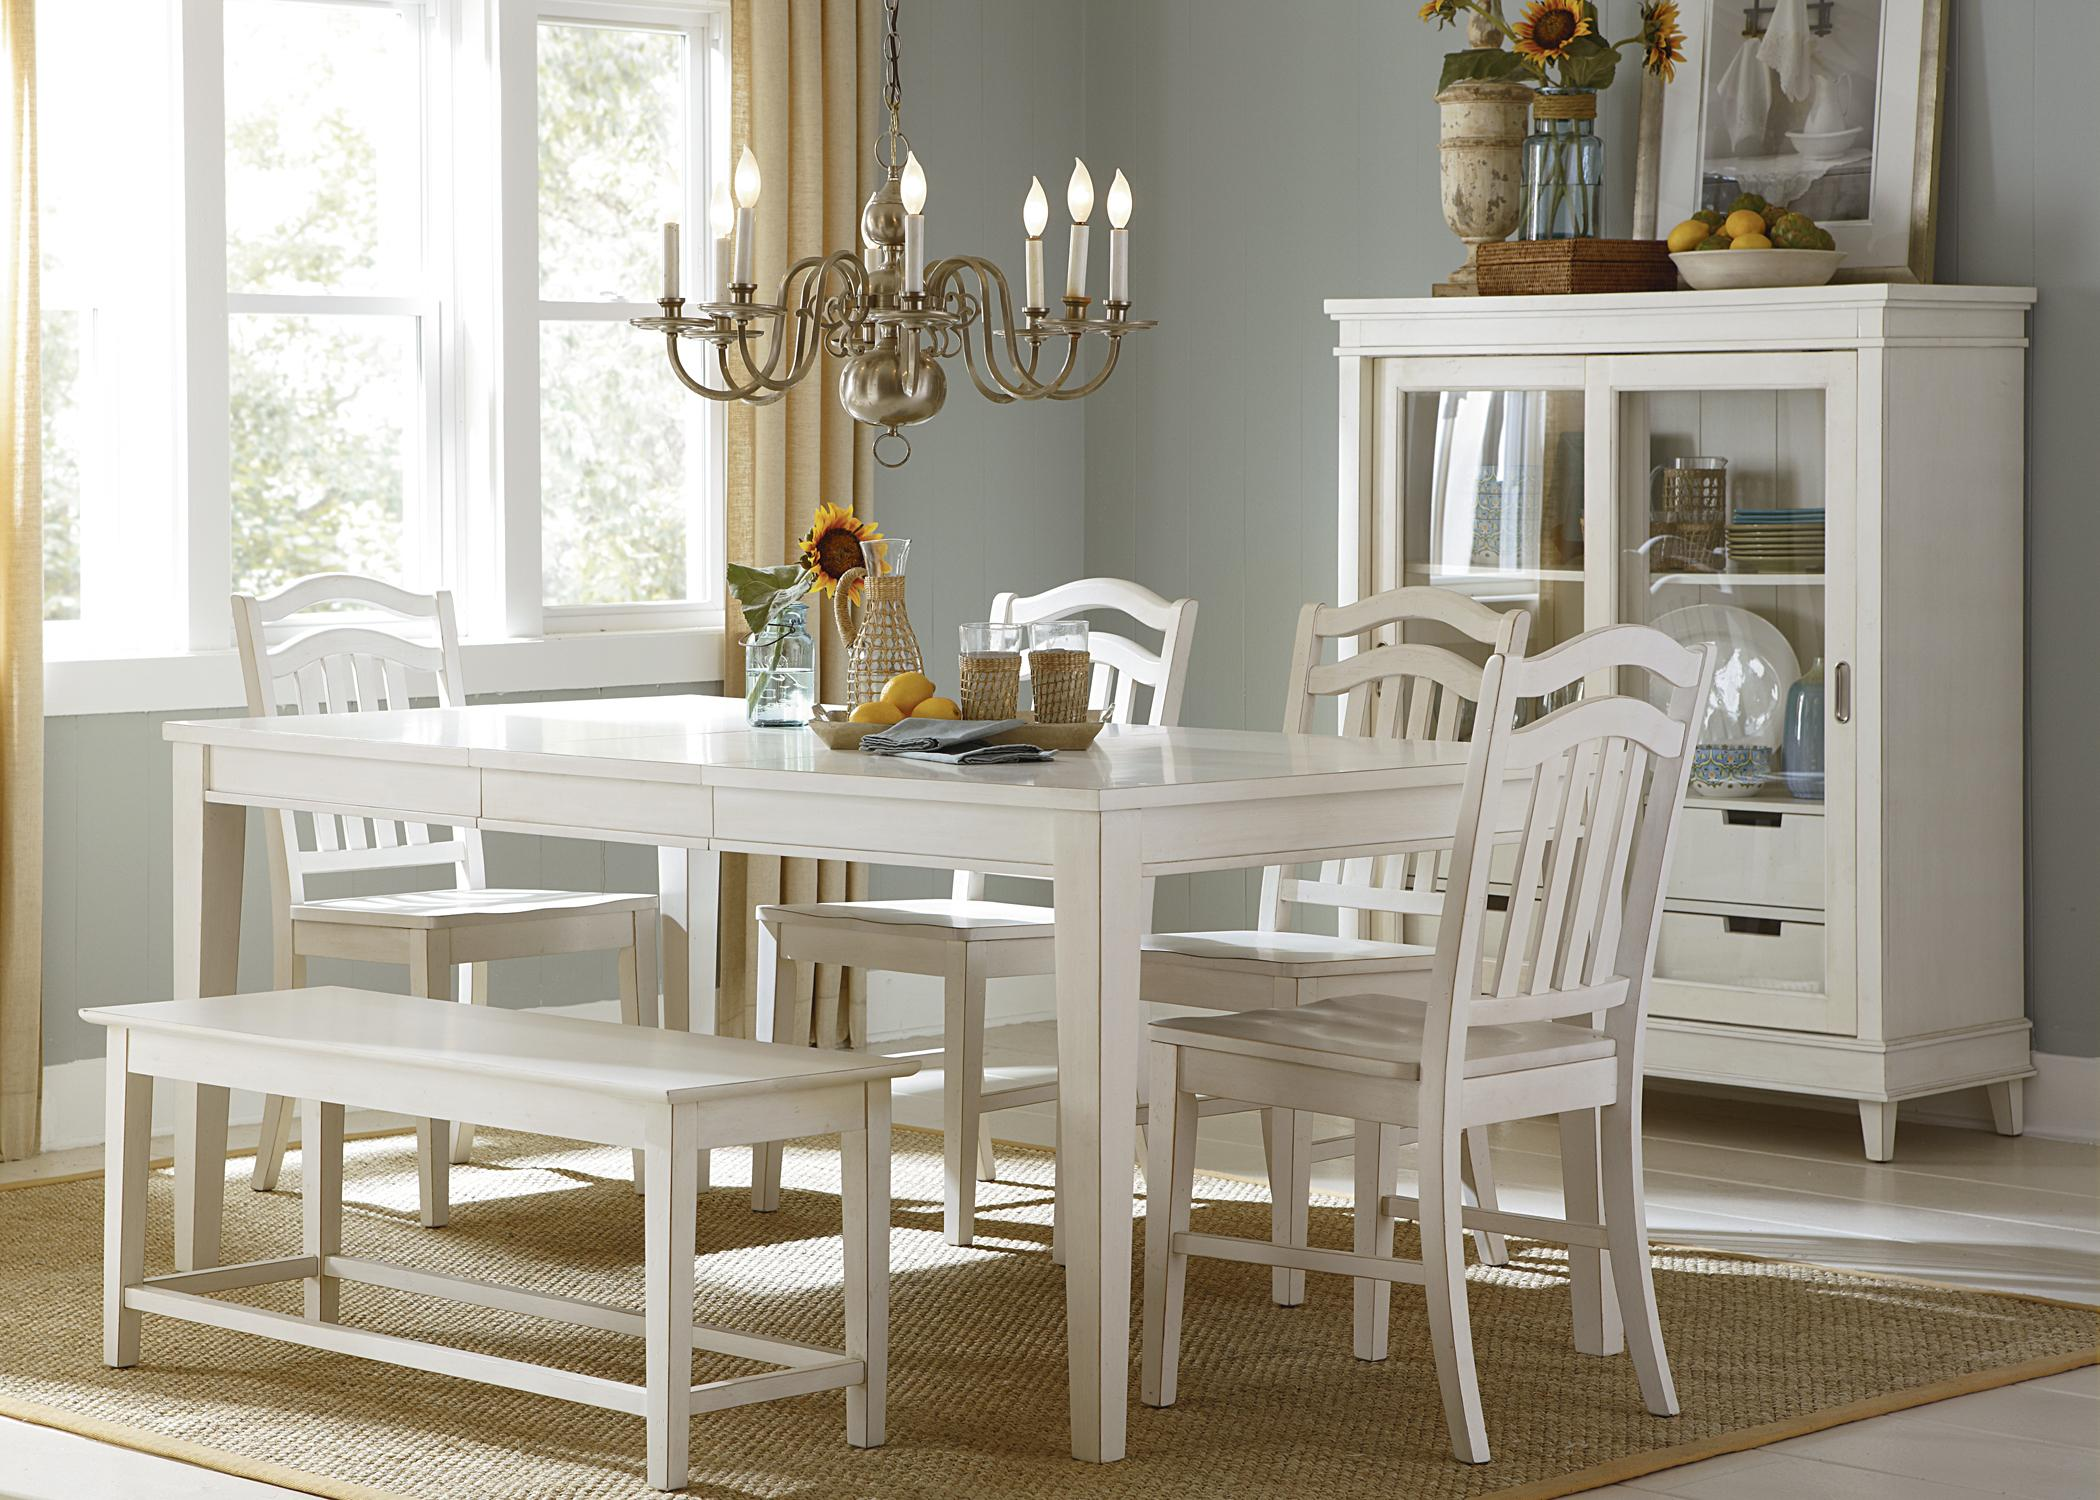 Charmant Liberty Furniture Summerhill 6 Piece Dining Set   Item Number: 518 CD